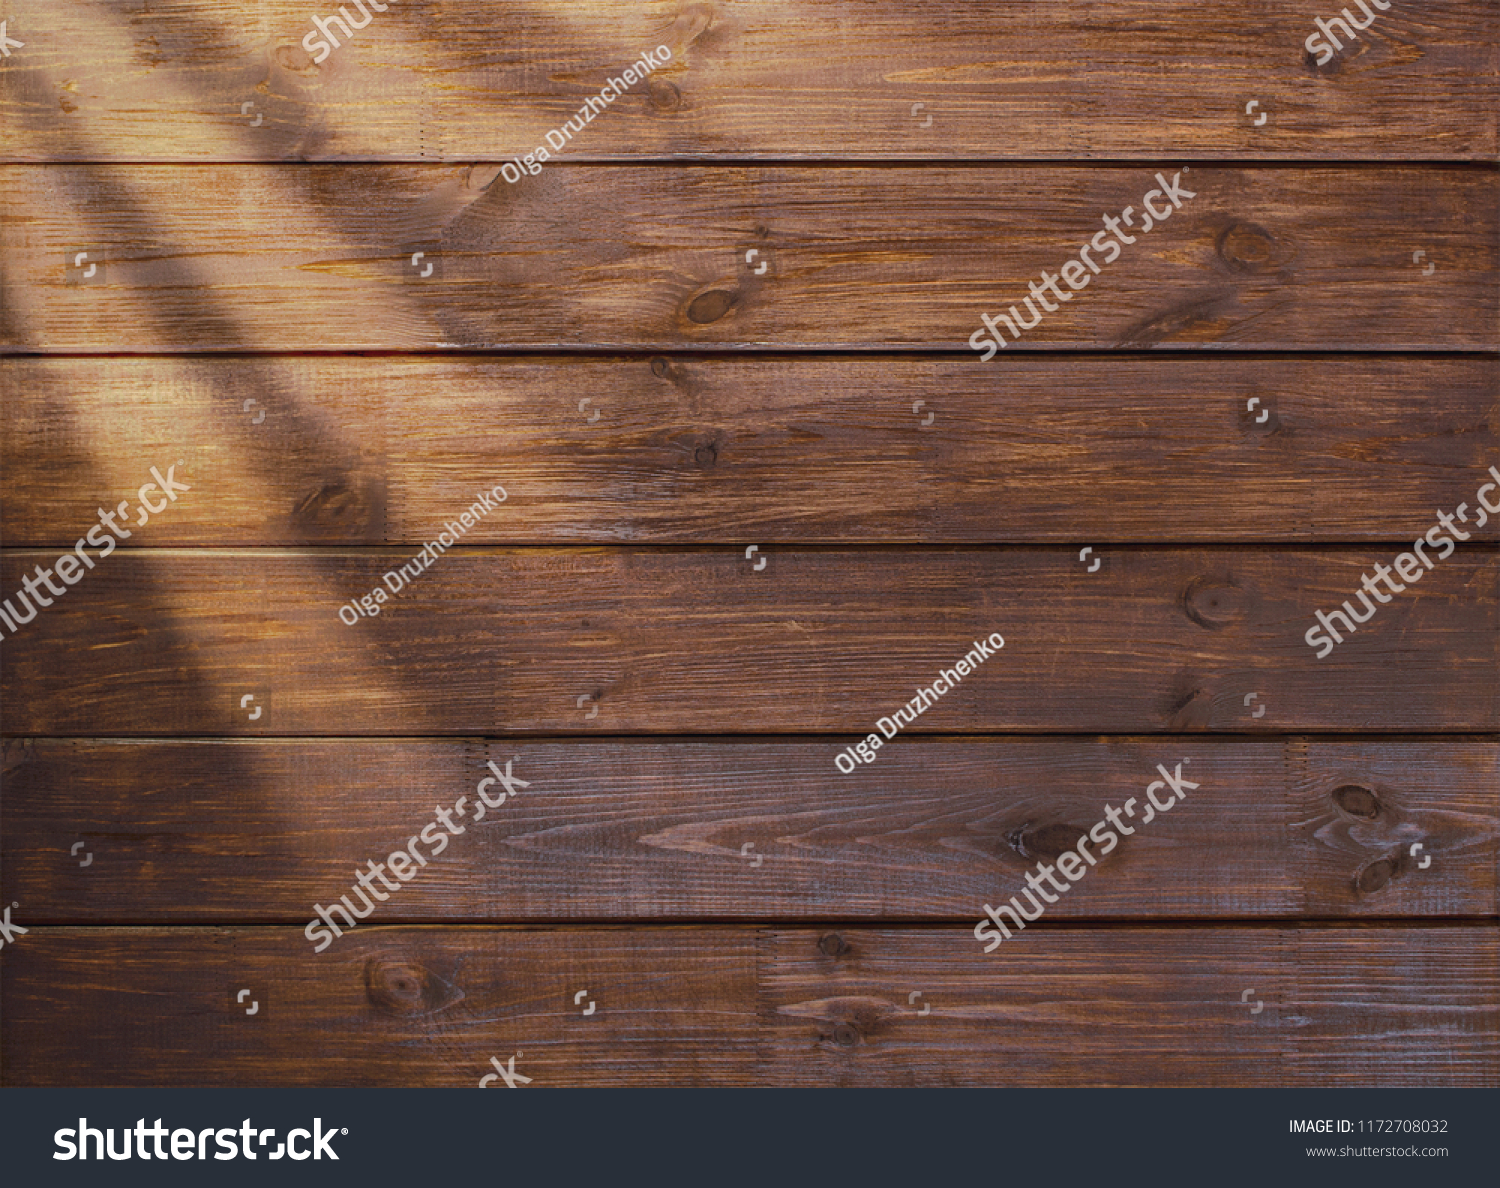 brown wooden plank desk table background texture top view #1172708032